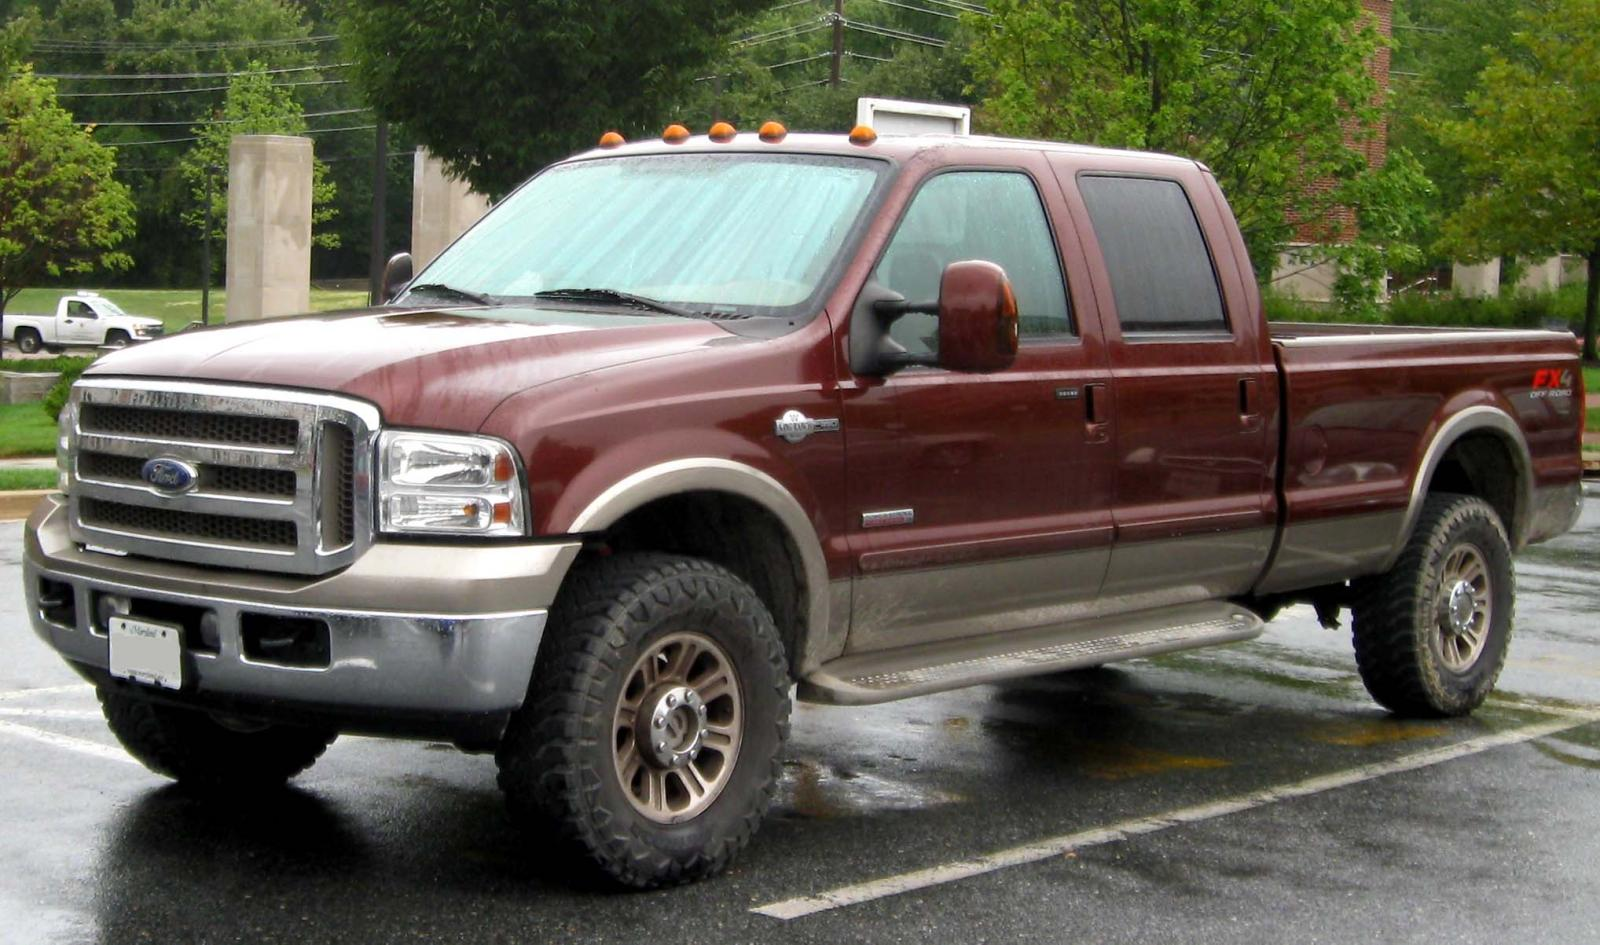 2000 Ford F 350 Super Duty Information And Photos Zombiedrive 2012 Mustang Fuel Filter Location Gallery